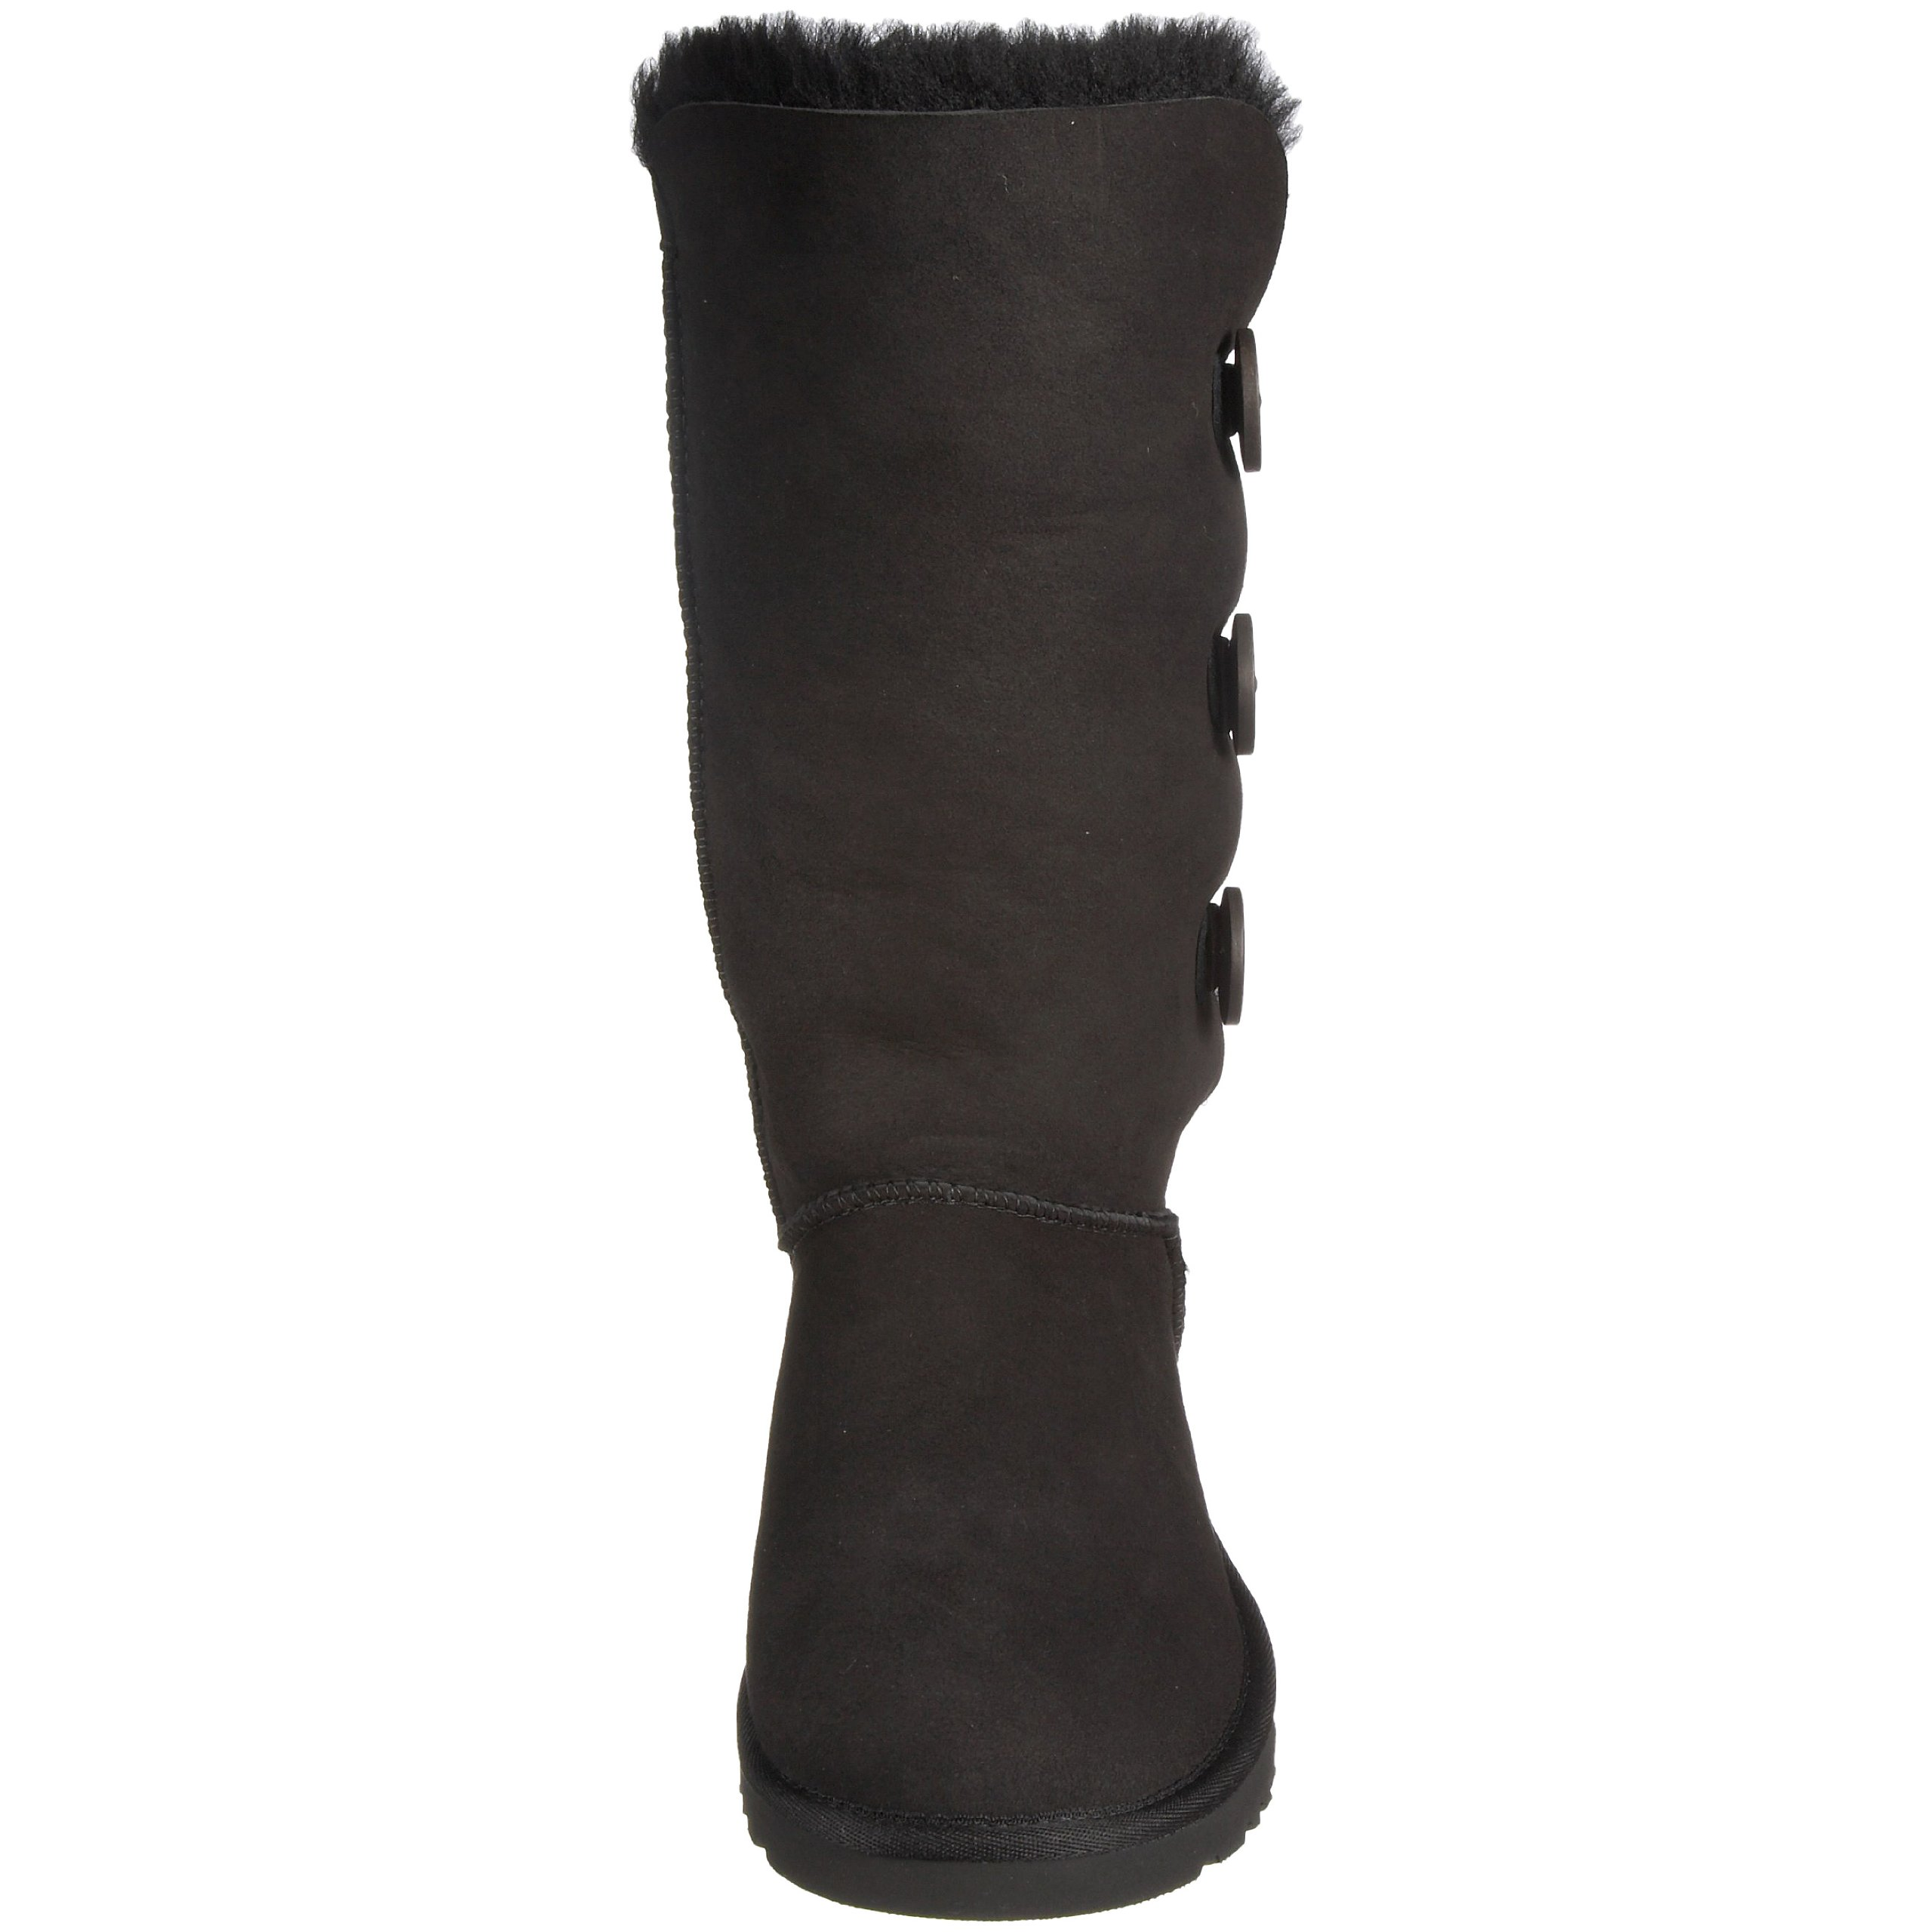 Ugg Women's Bailey Button Triplet Boot, Black, 6 M US by UGG (Image #4)